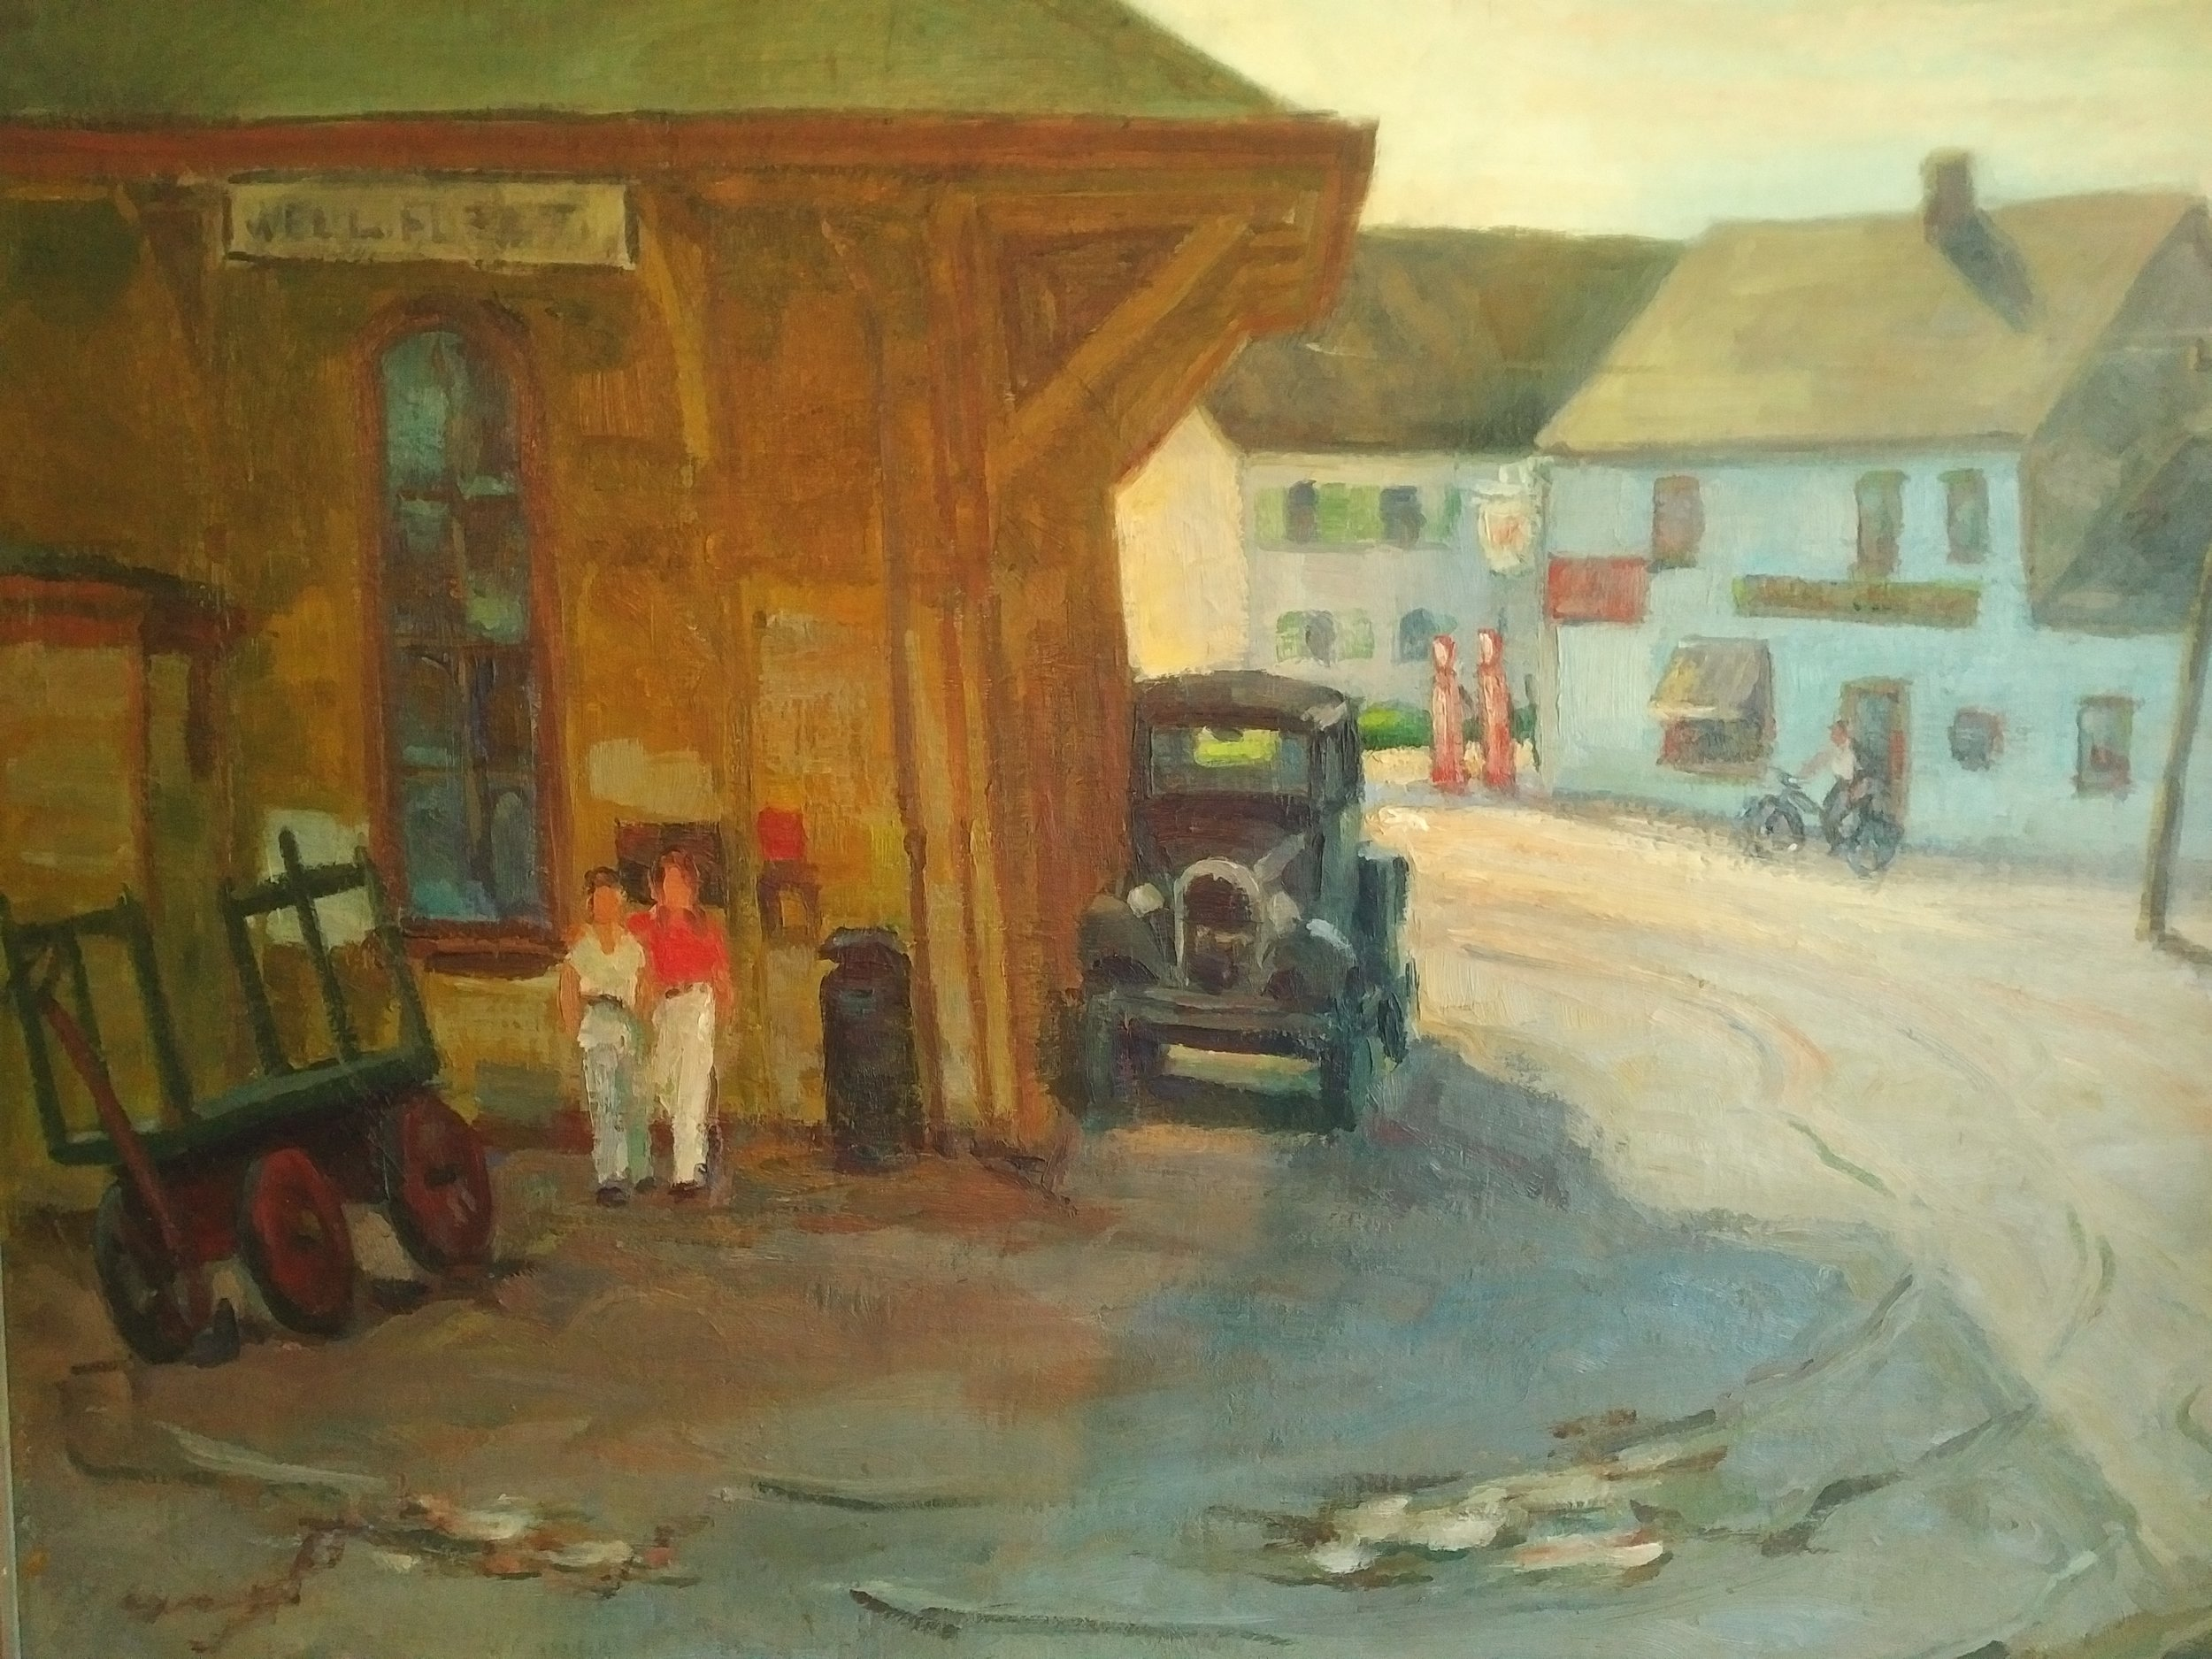 View of the depot. Painting on loan from the collection of M. Parlante